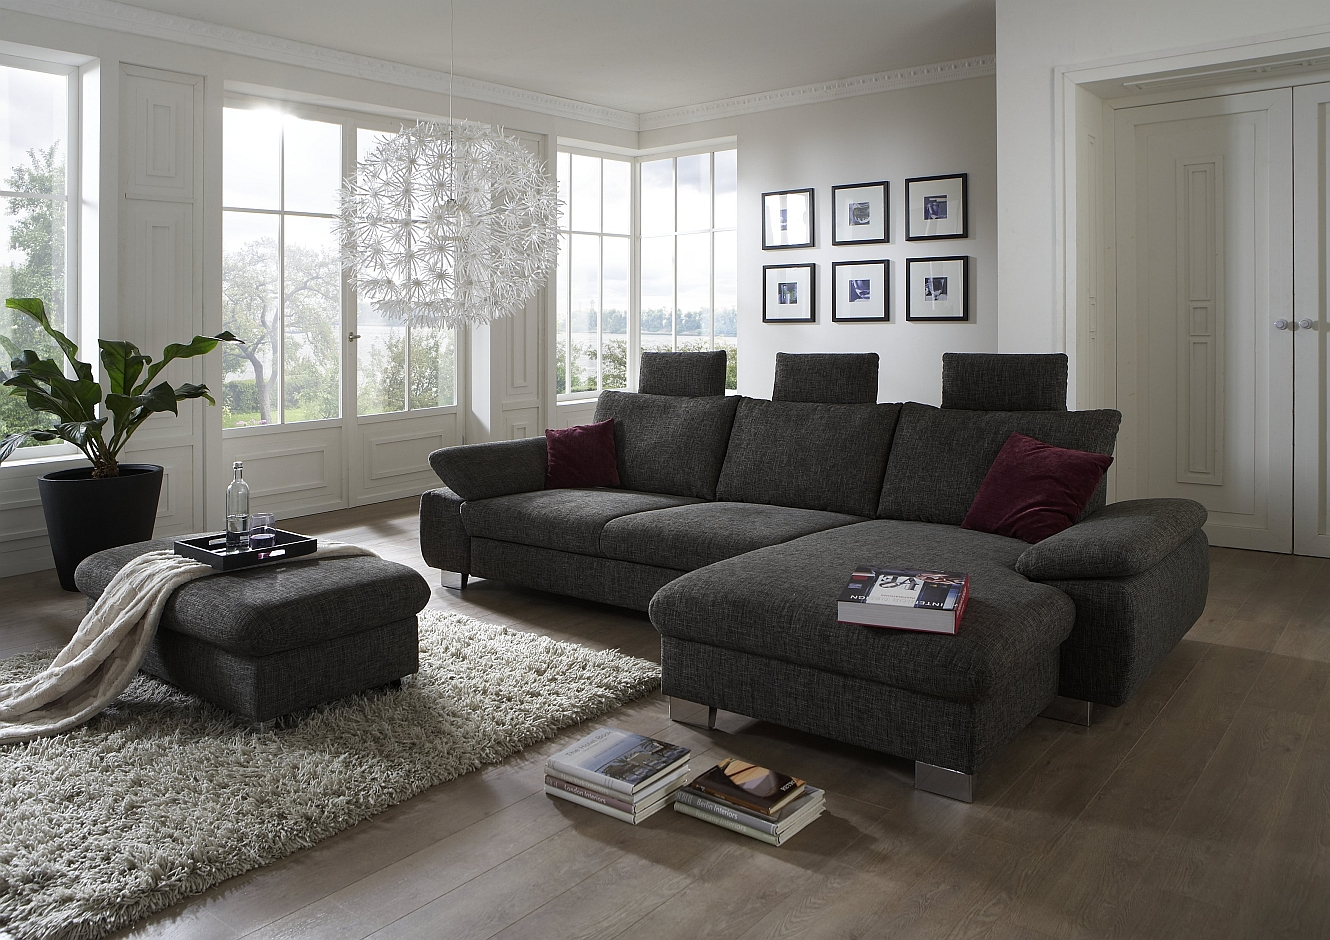 zehdenick sofa polster rumba naura g nstig. Black Bedroom Furniture Sets. Home Design Ideas